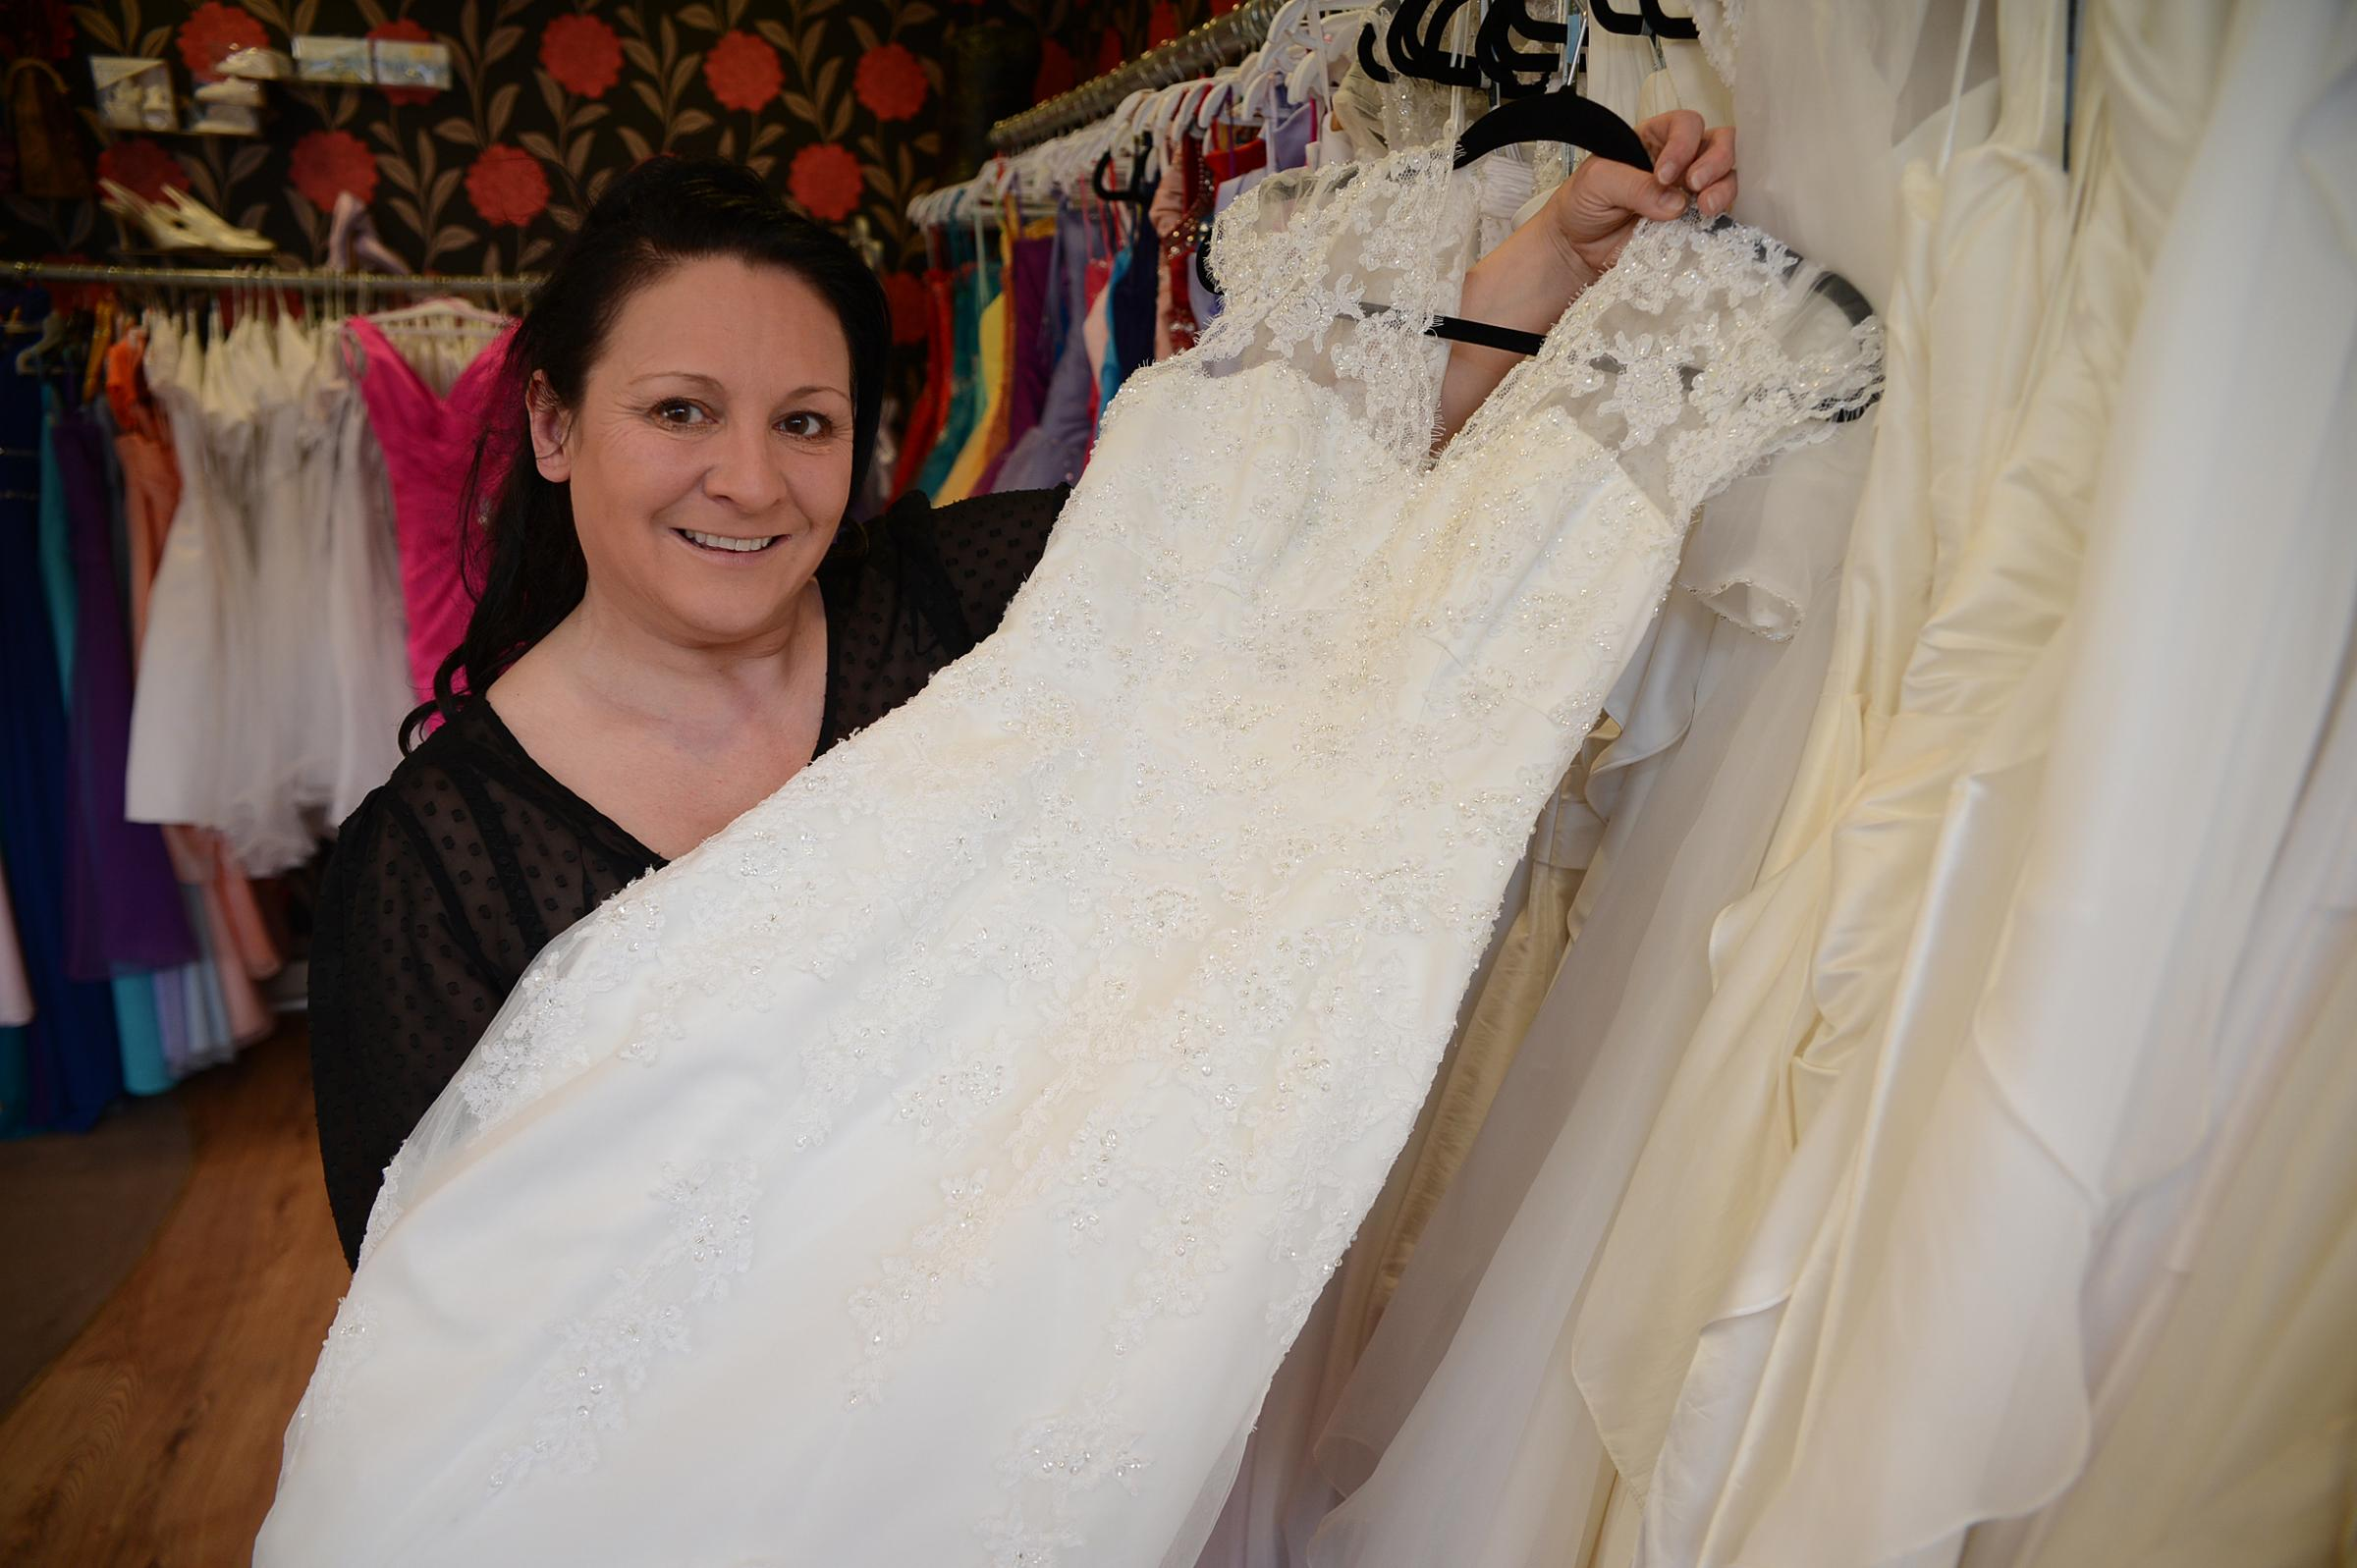 Shoebury bridal shop owner comes to rescue of distraught brides-to ...